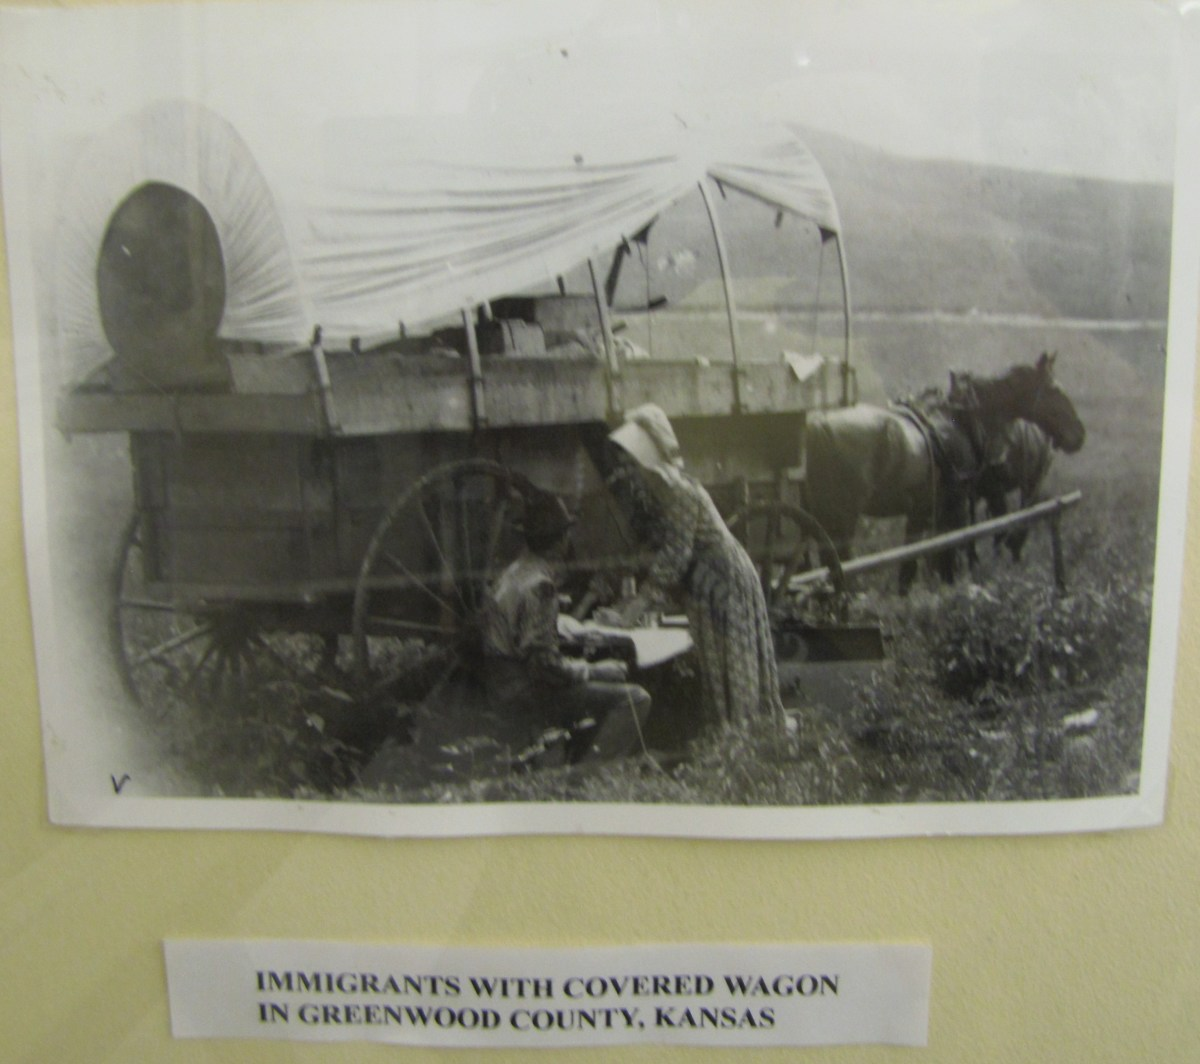 My ancestors arrived in Kansas in a covered wagon similar to this one. They lived the life of pioneers and probably had a frugal Christmas just like the Ingalls family did in the Laura Ingalls Wilder stories.